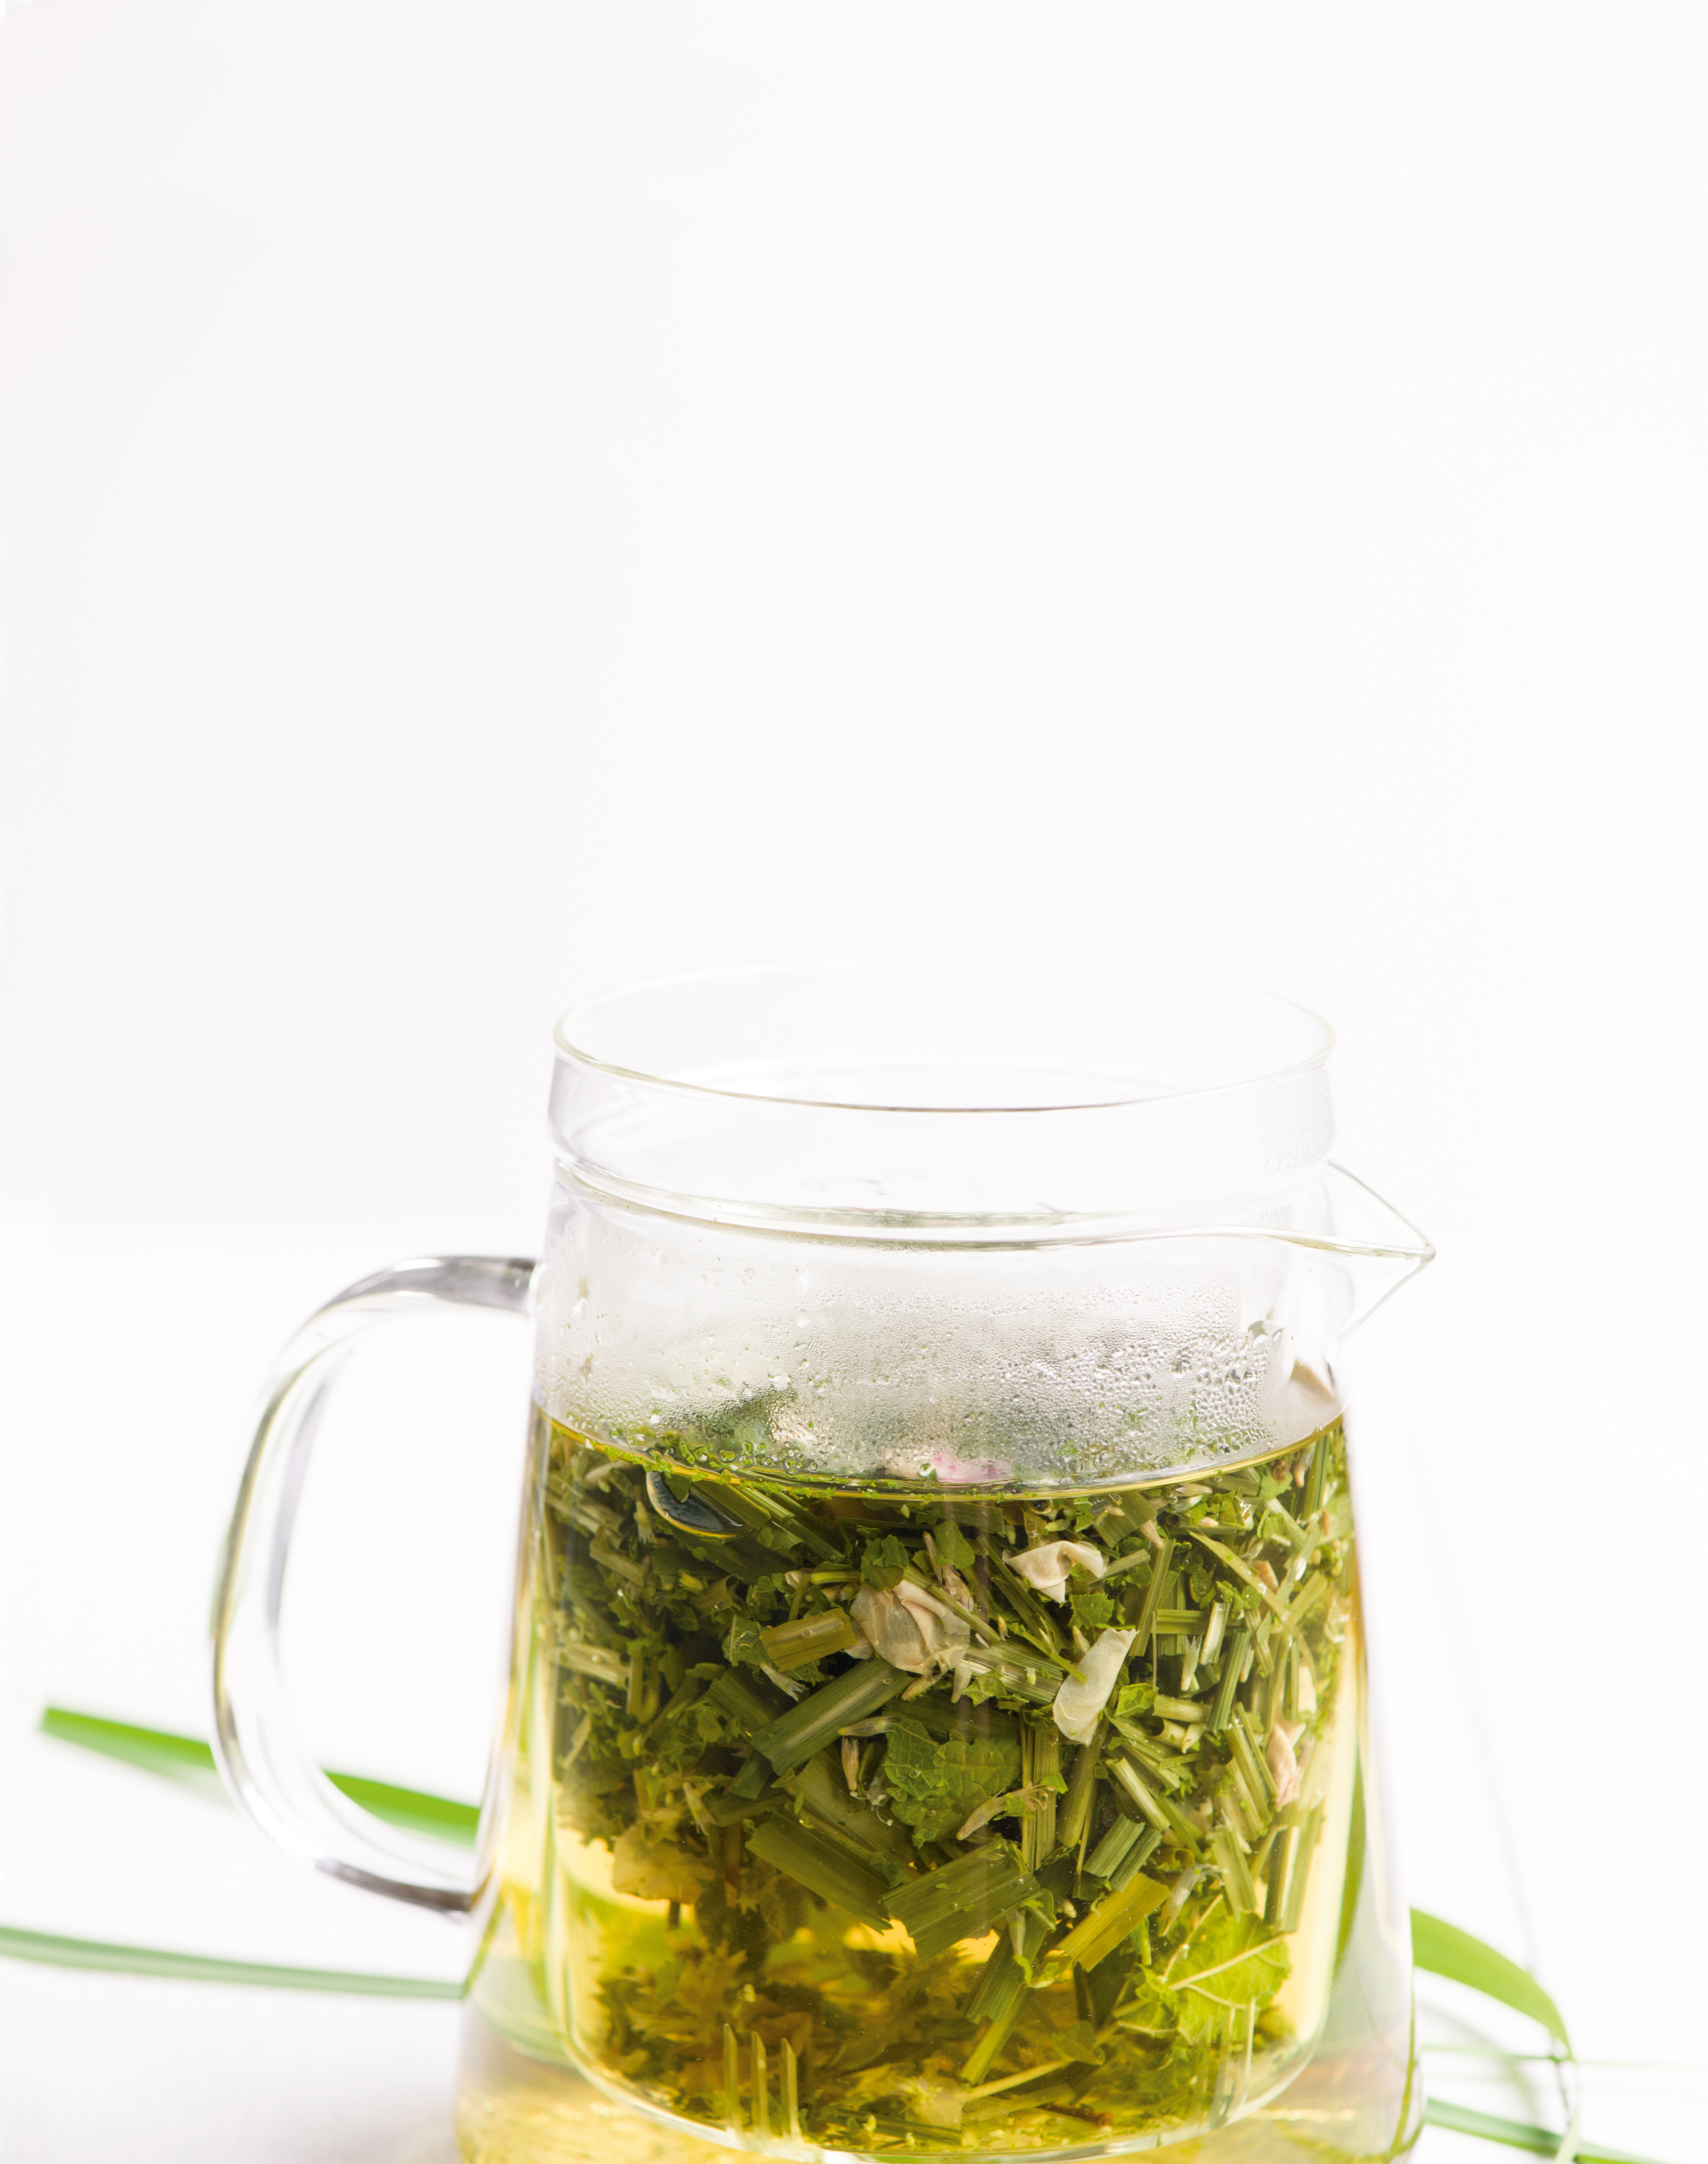 A clear mug filled with brewing tea.